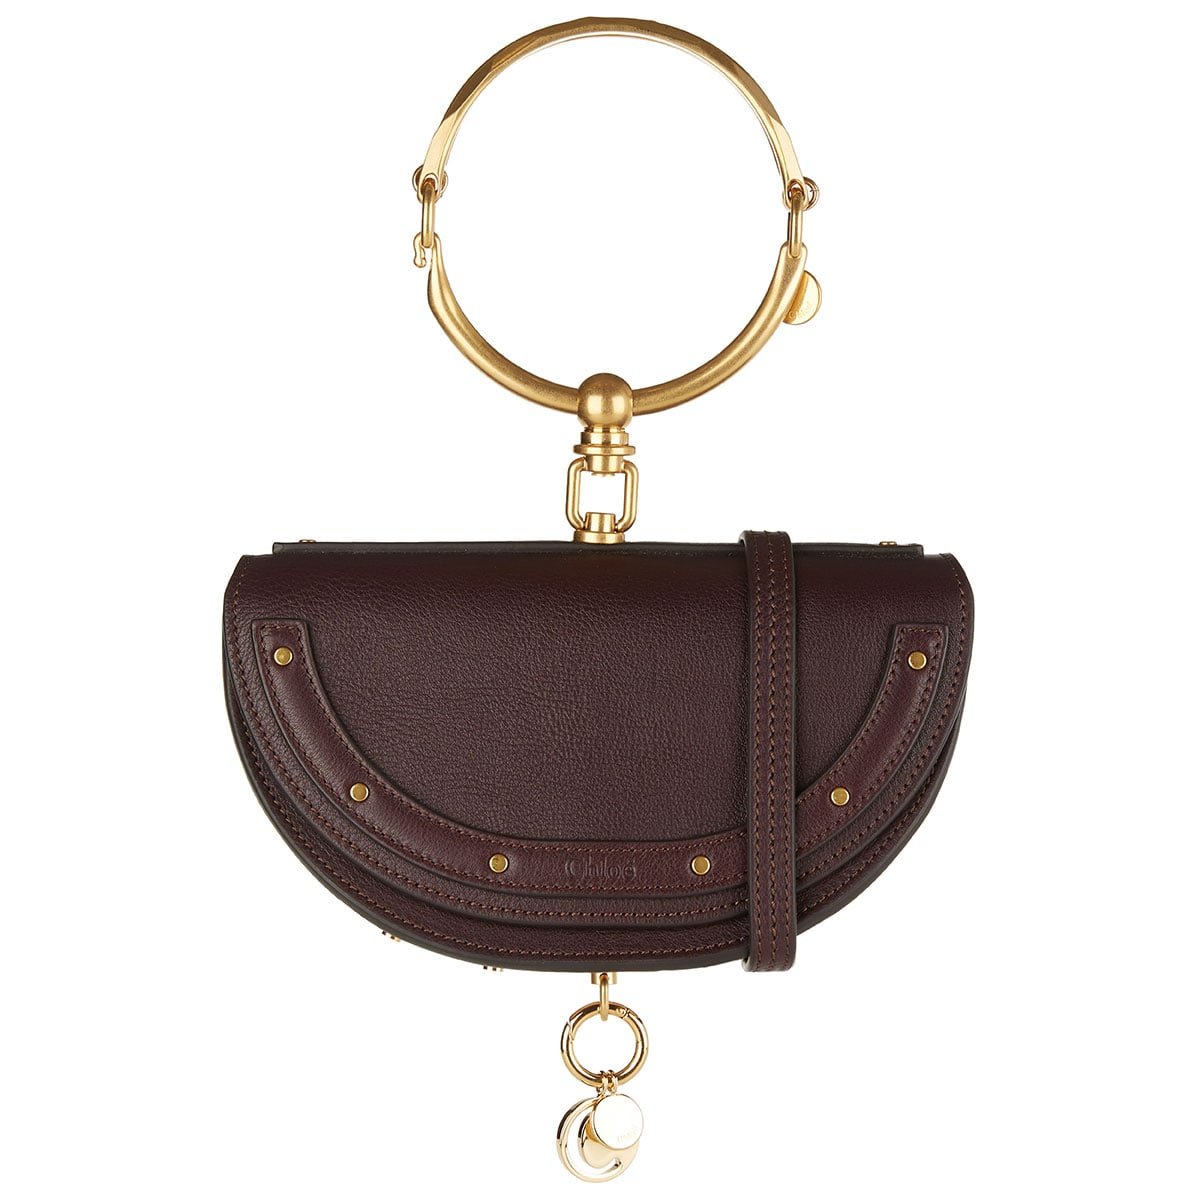 Nile Minaudière leather bag